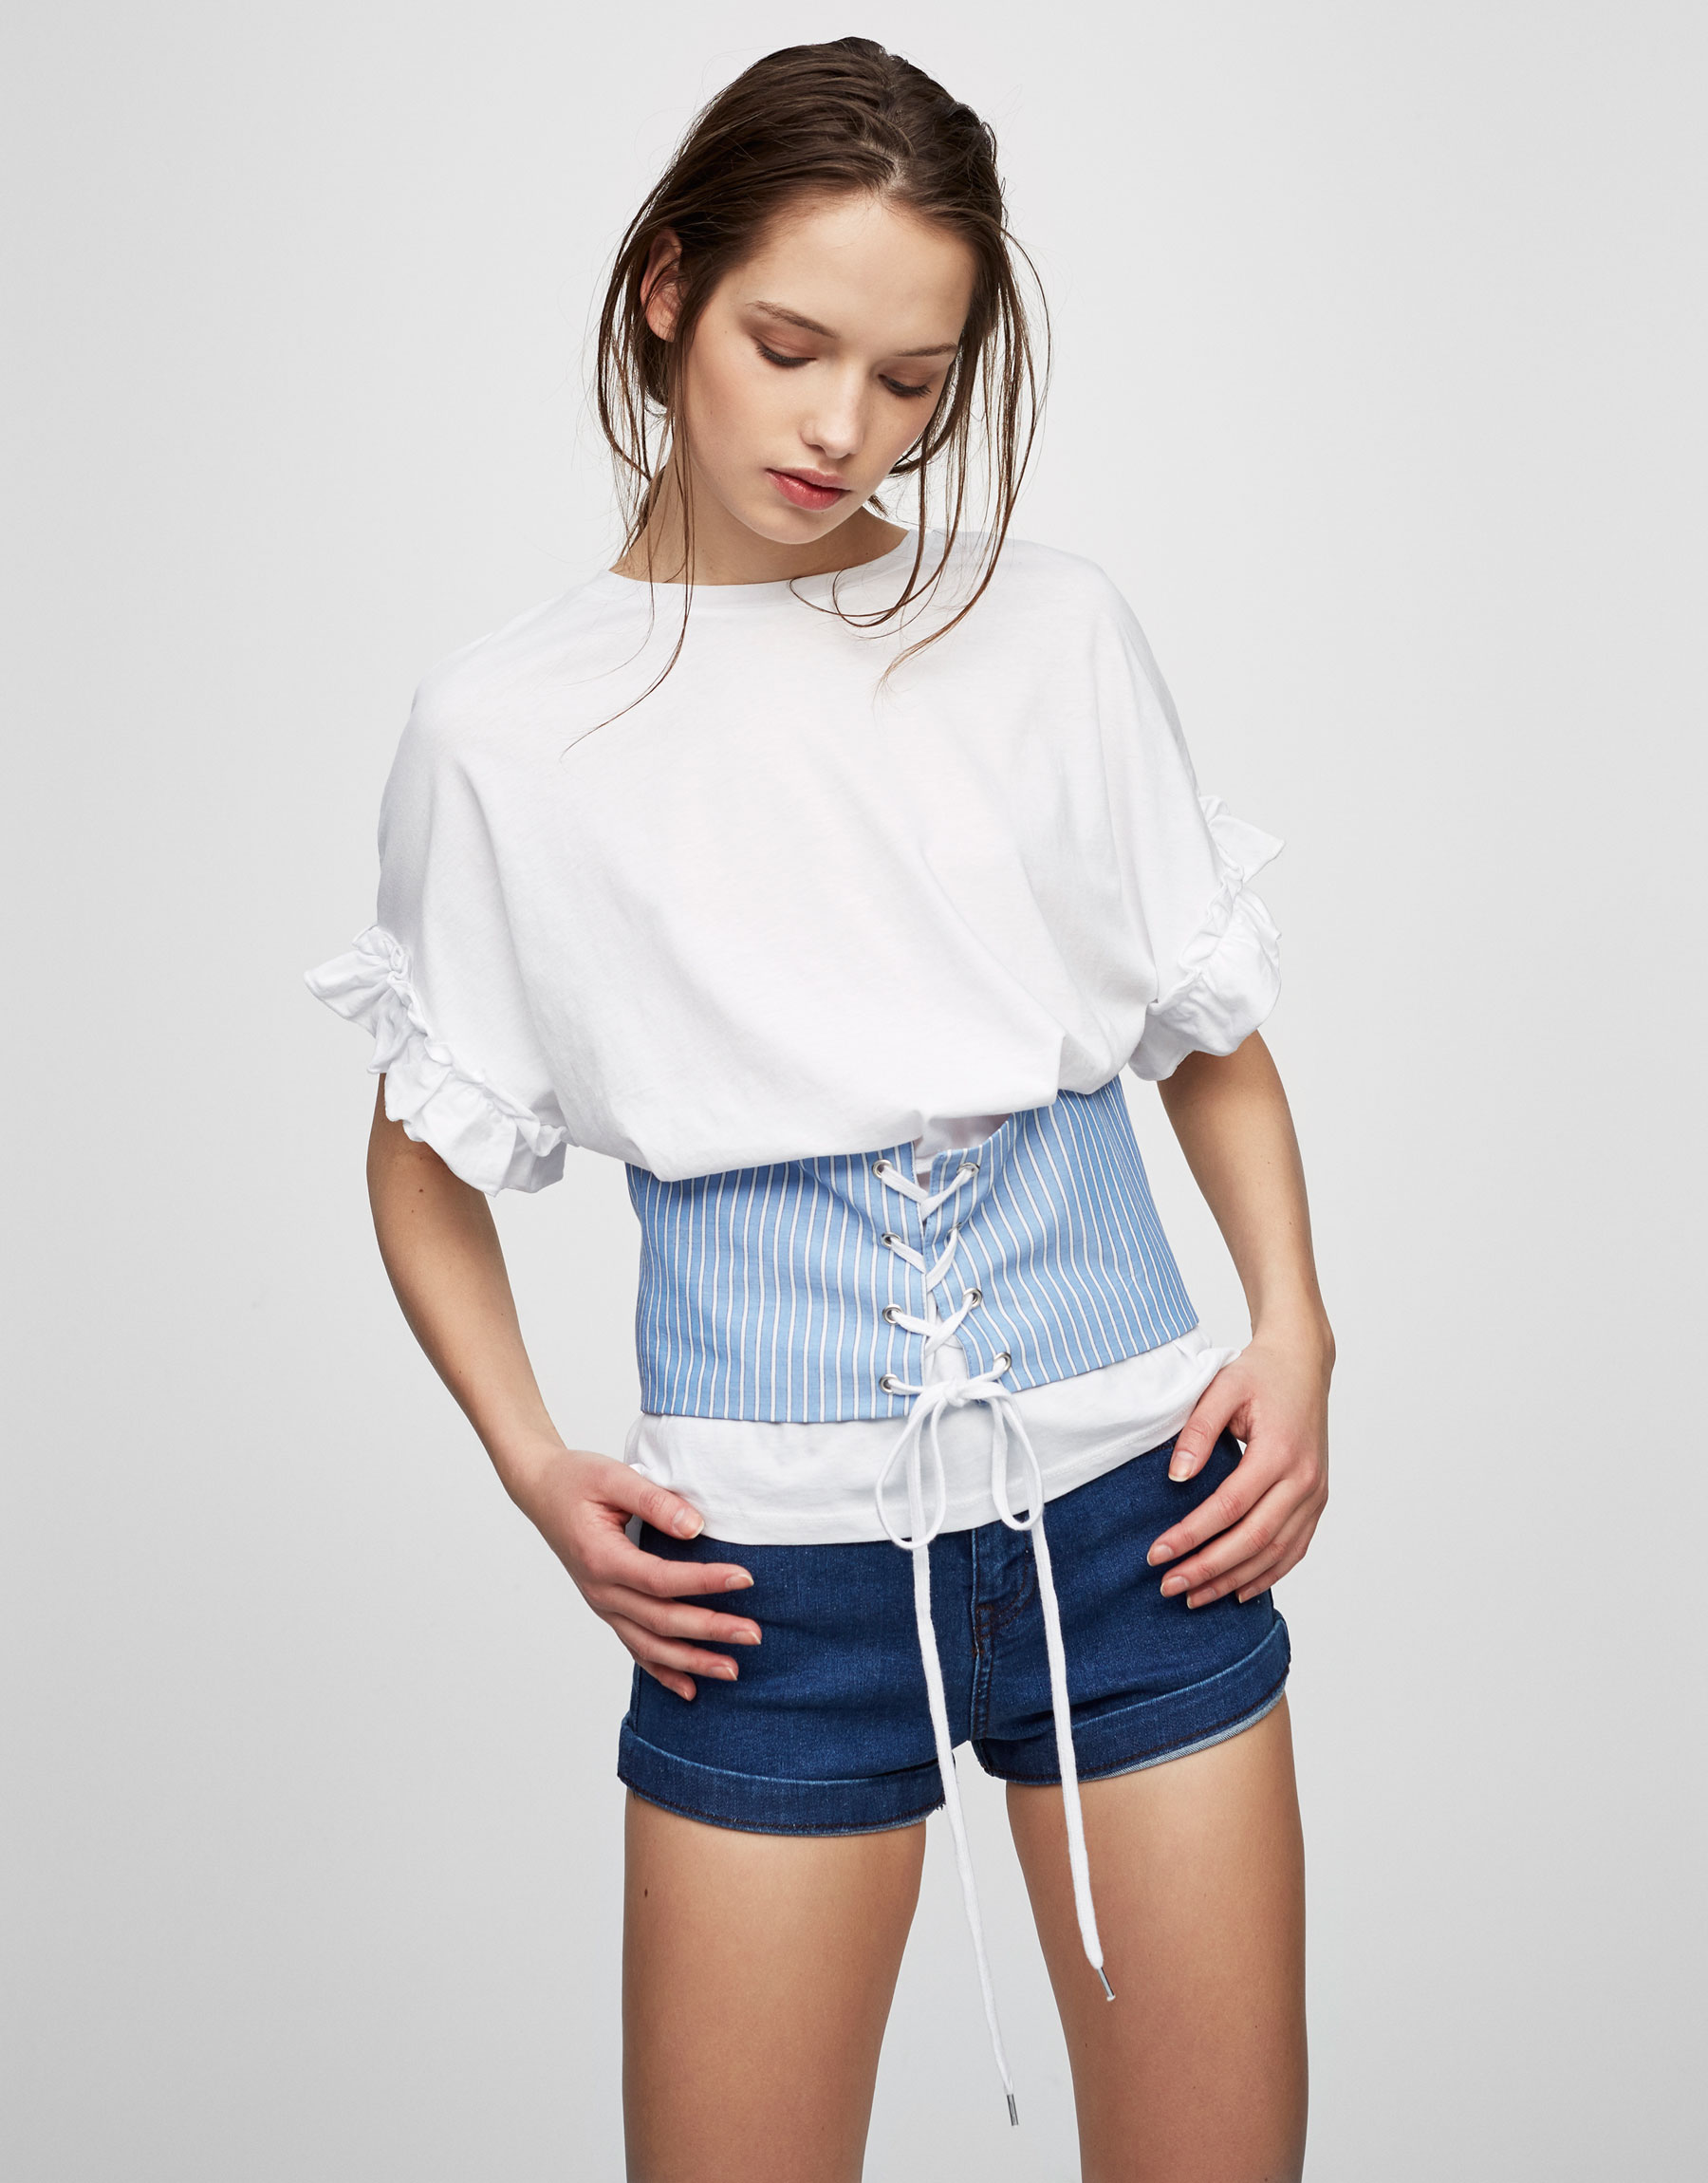 High waist jean shorts with turn-up cuffs